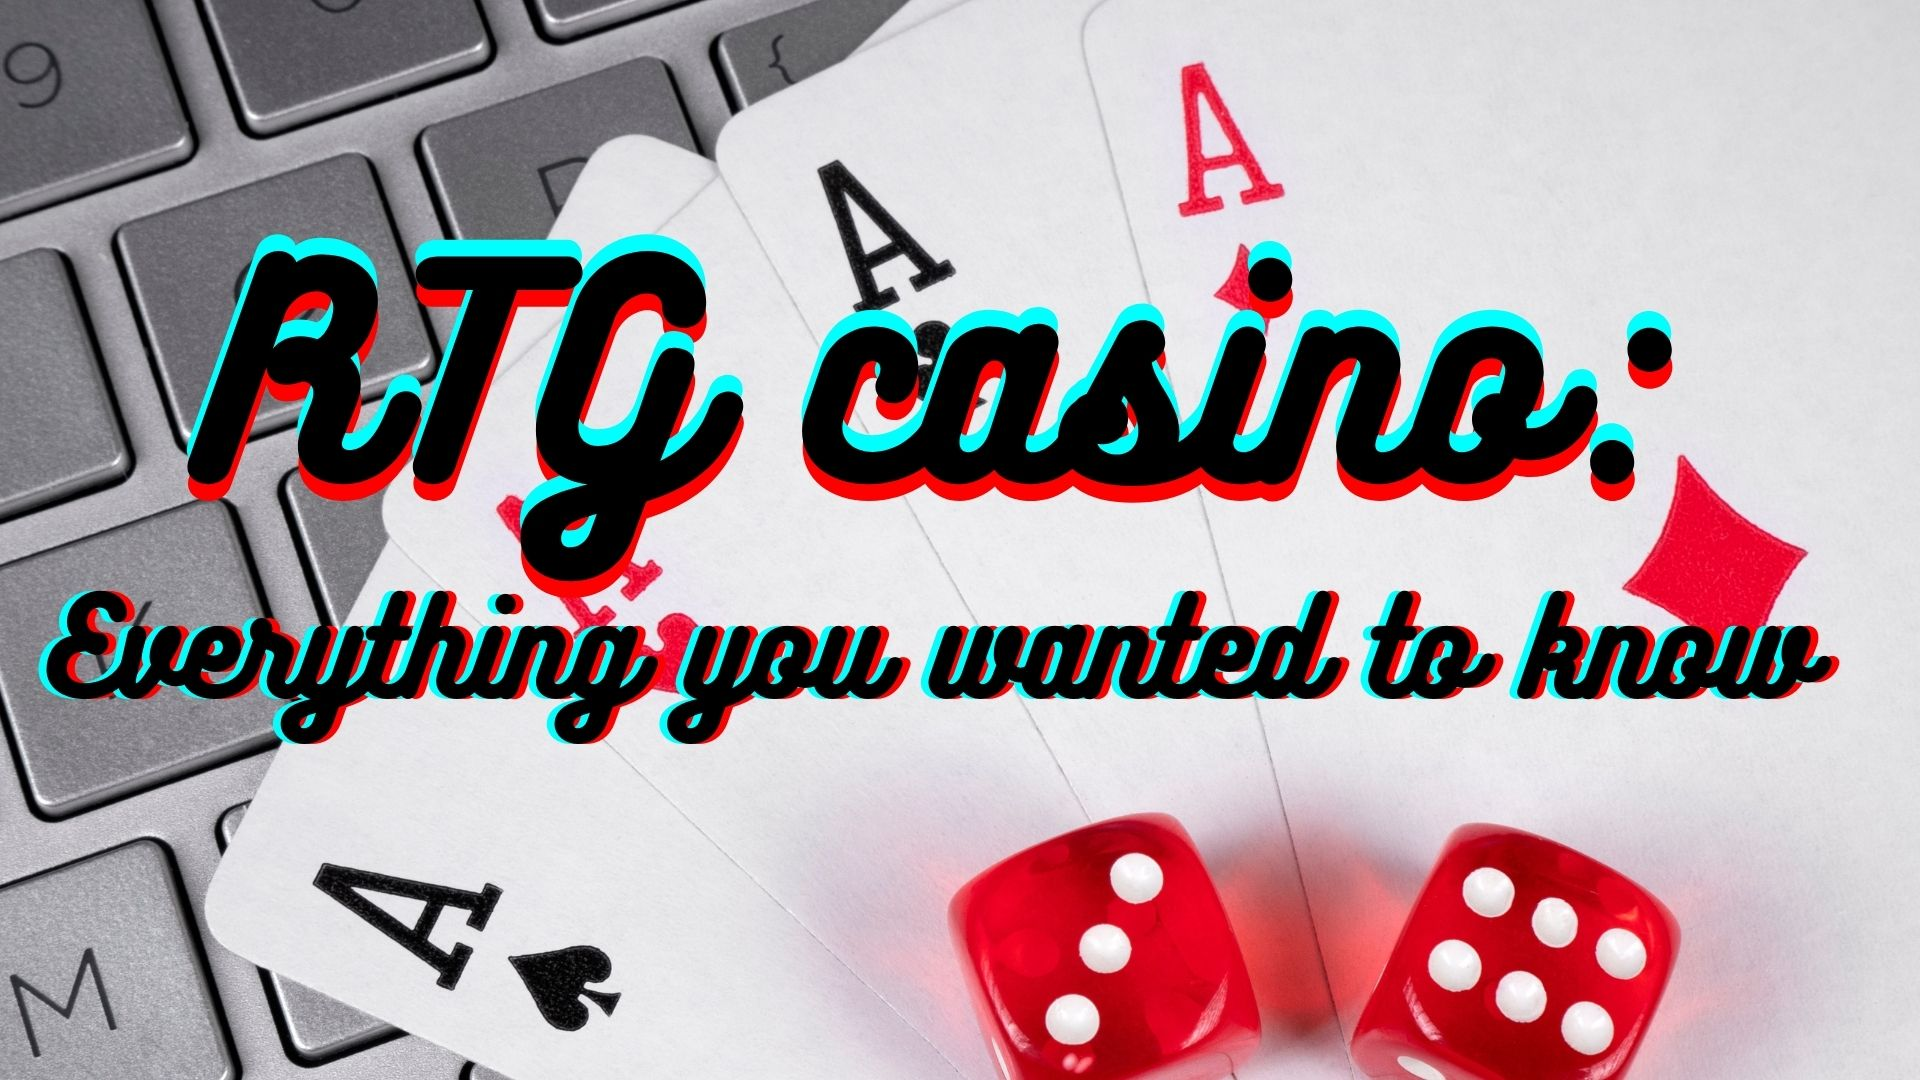 Rtg Casino Everything You Wanted To Know